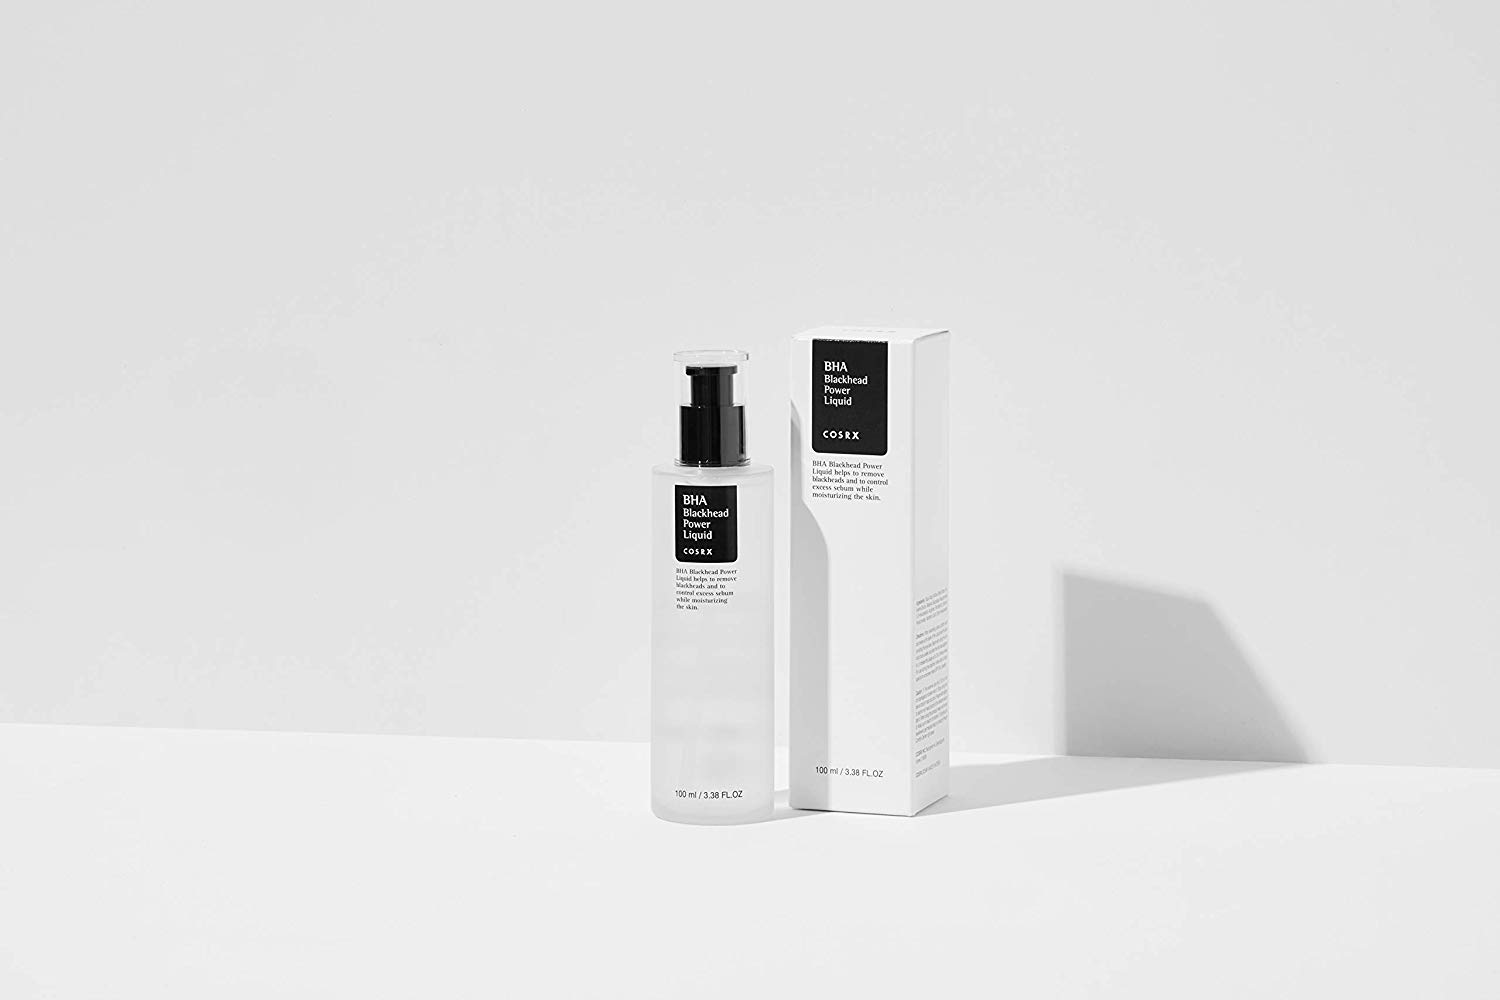 BHA Blackhead Power Liquid – COSRX 1